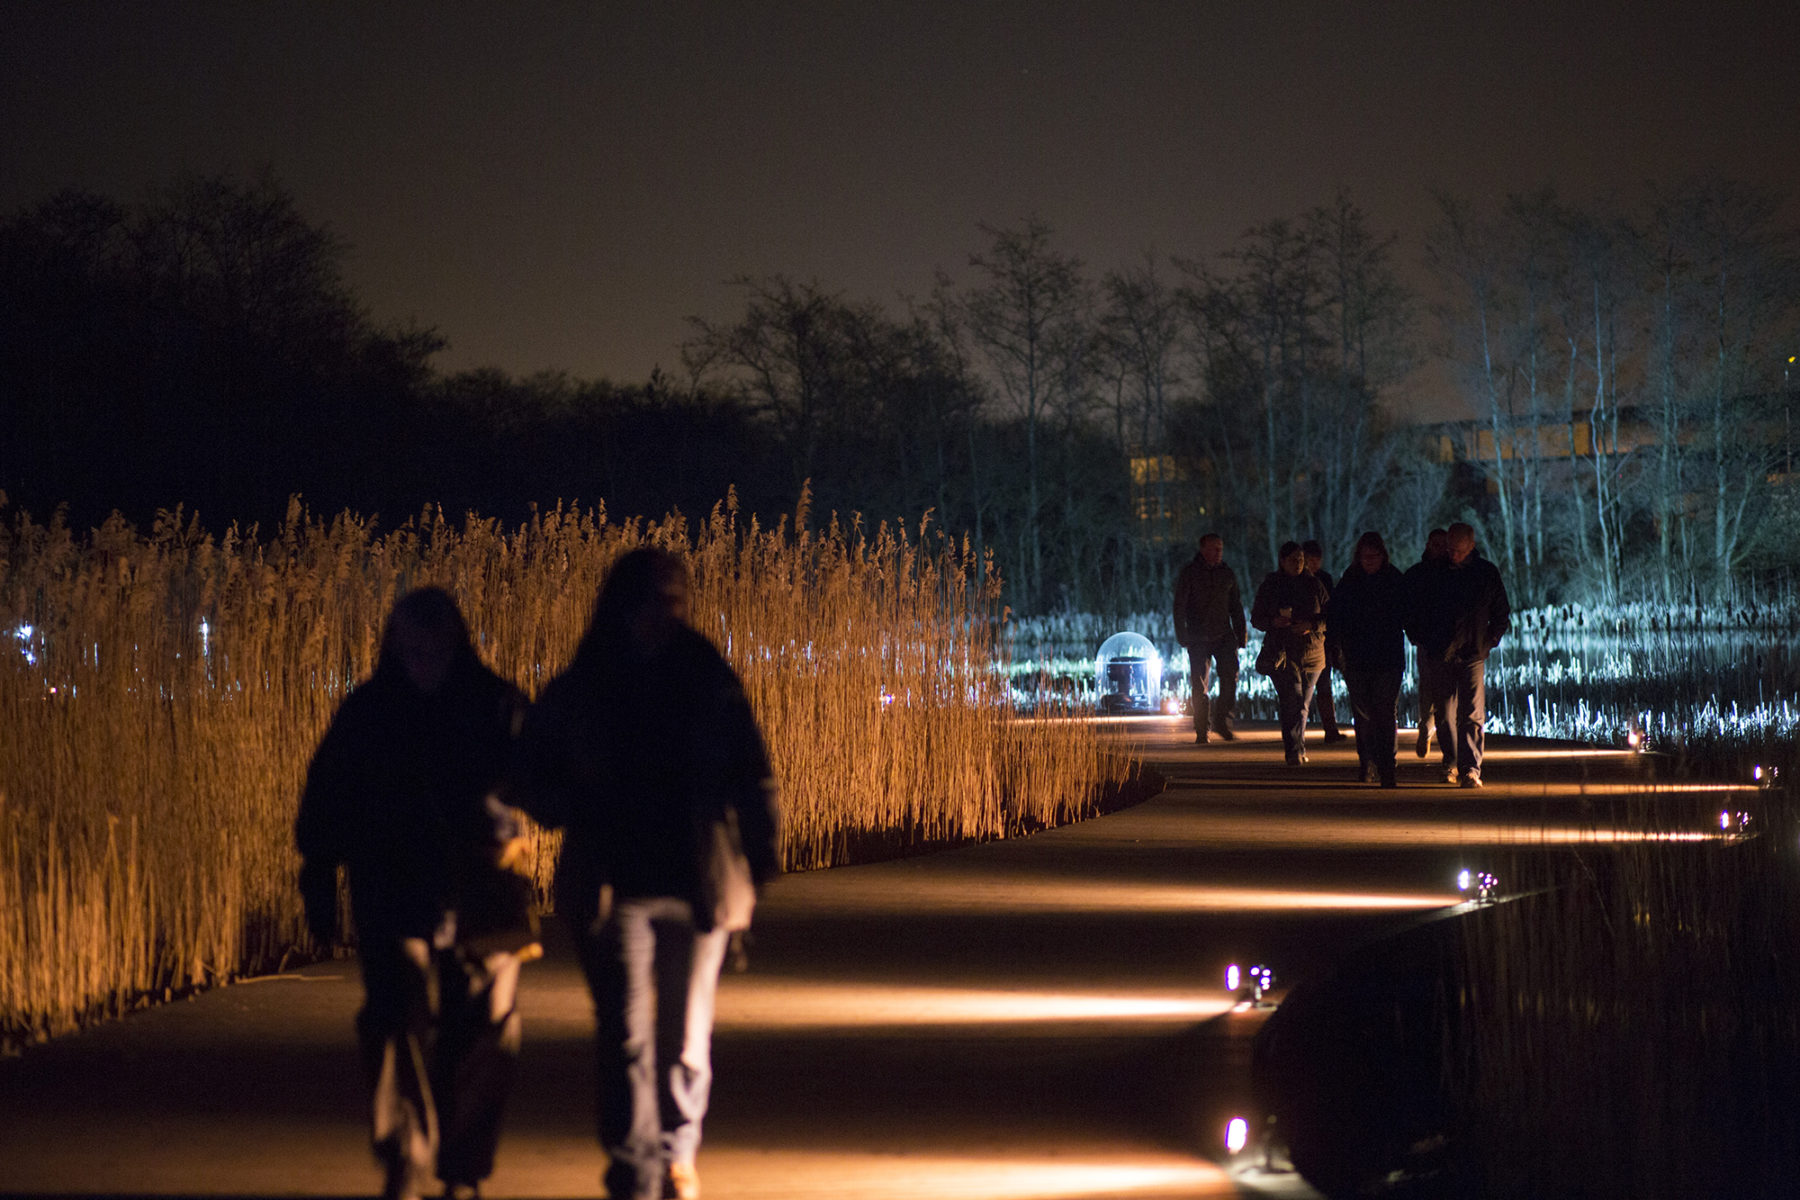 Visitors, John Muir Festival 2014, light show | by McAteer Photograph